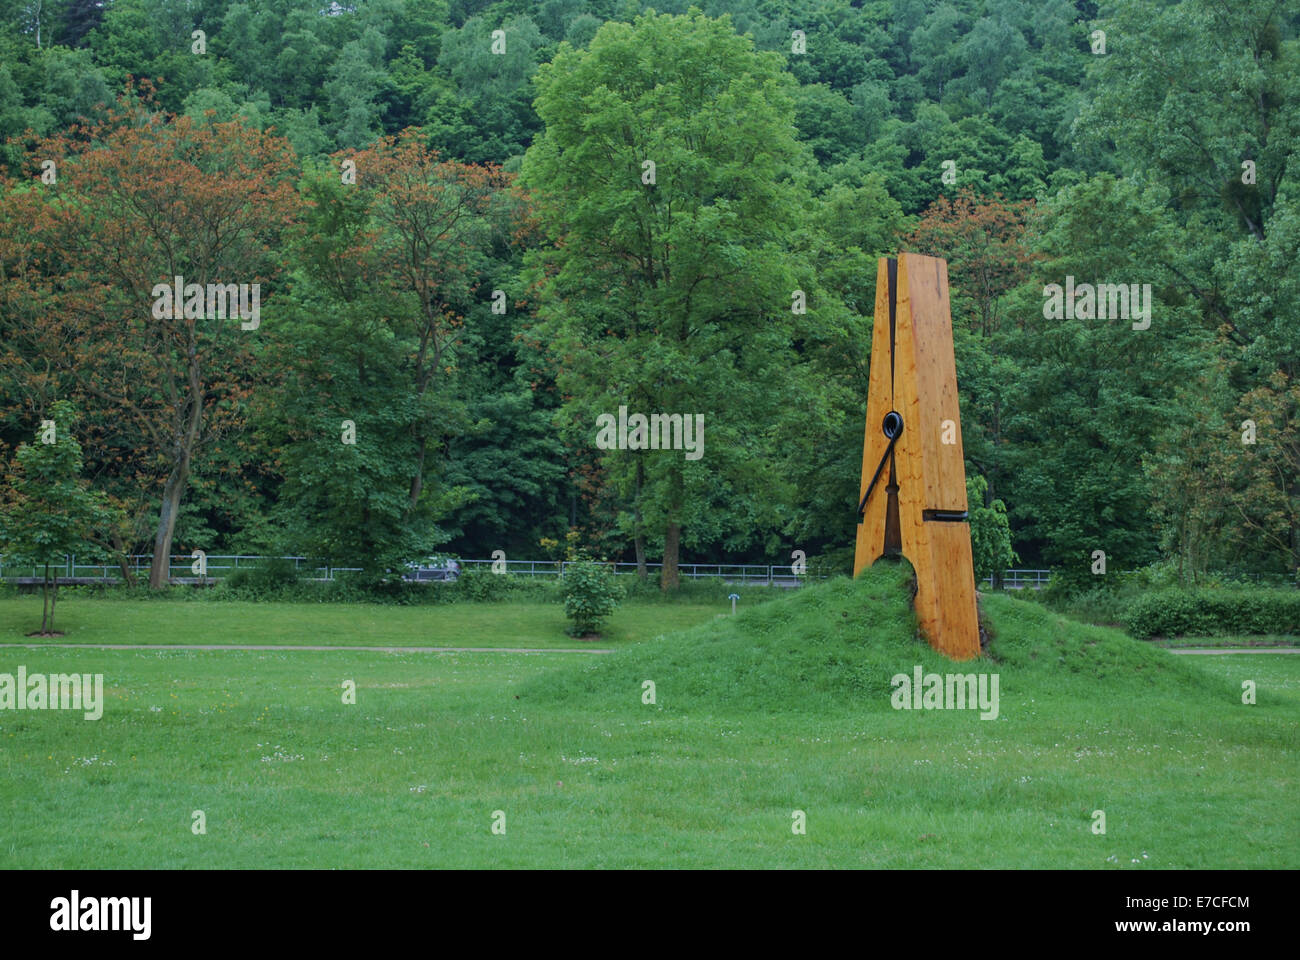 A giant clothespin sculpture creates a pinch in Liege, Belgium - Stock Image